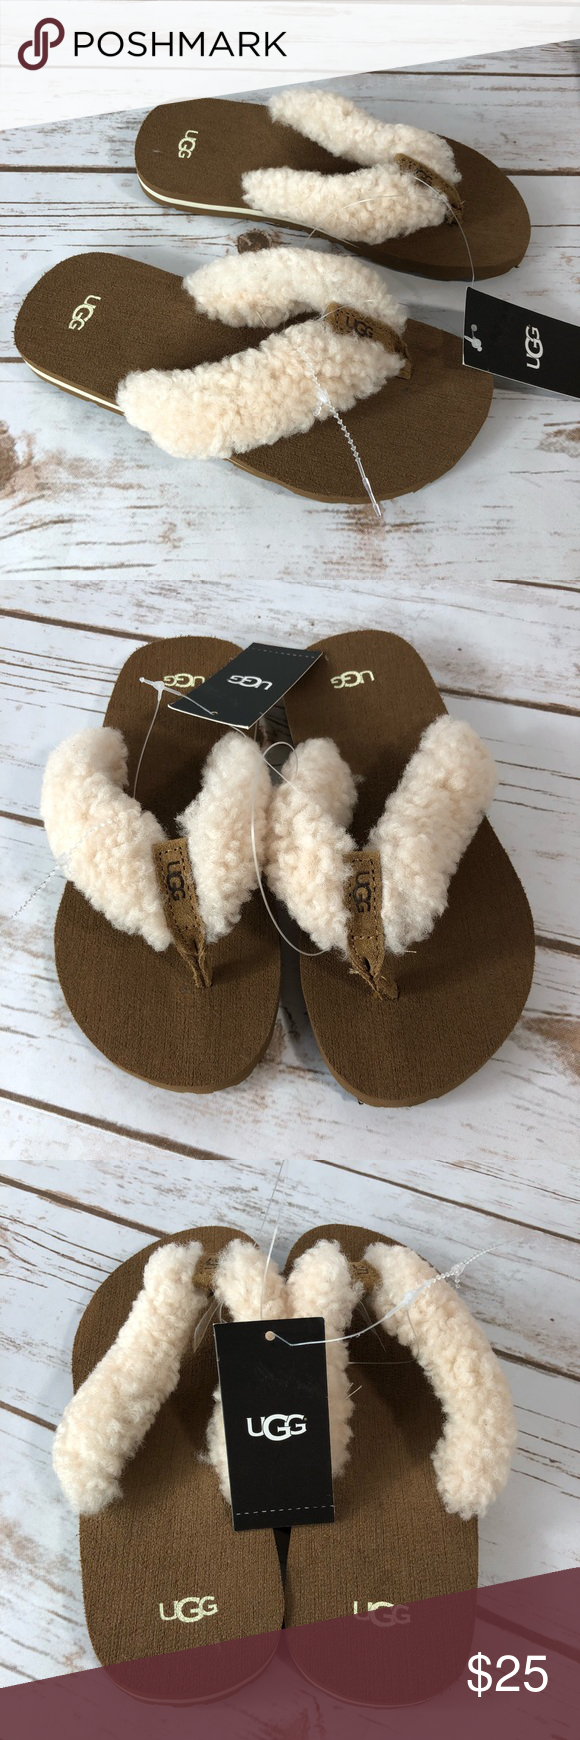 a12050d5ee7 Ugg K Schutter Sandals NEW Final Price New with Tags No Box A UGG ...